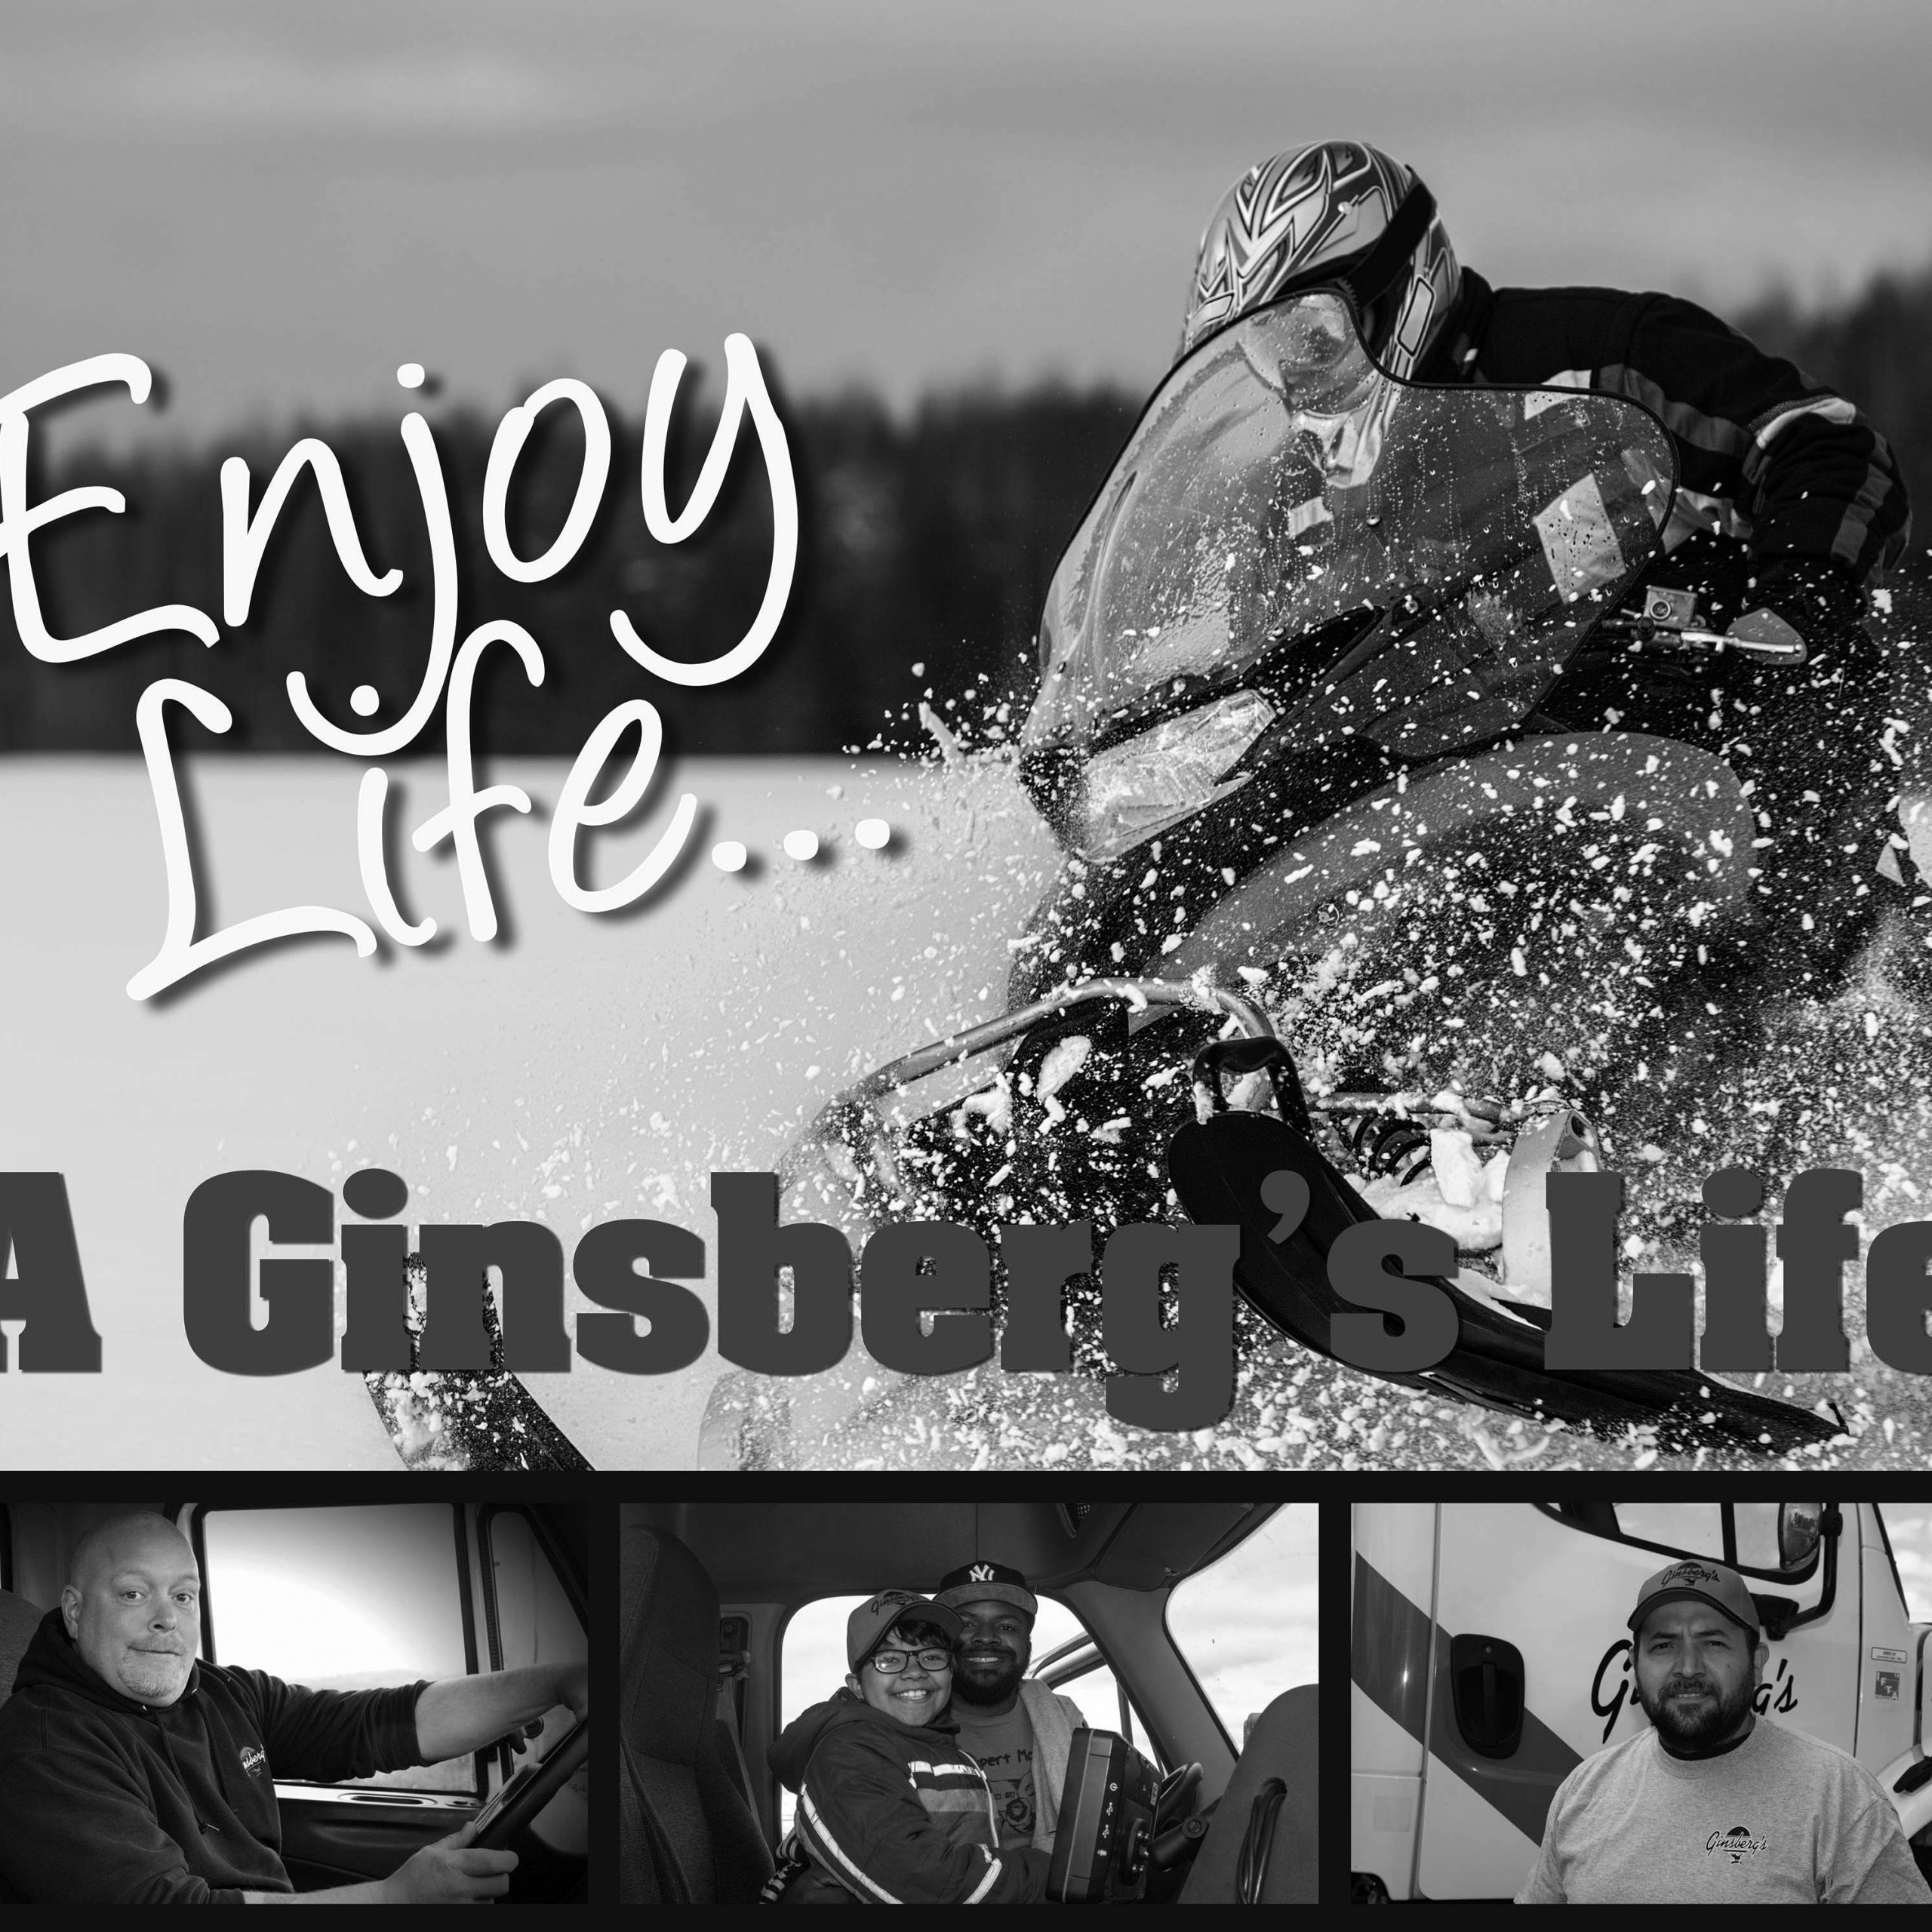 man riding snowmobile vehicle on off road track ,people outdoor sport activitiies theme